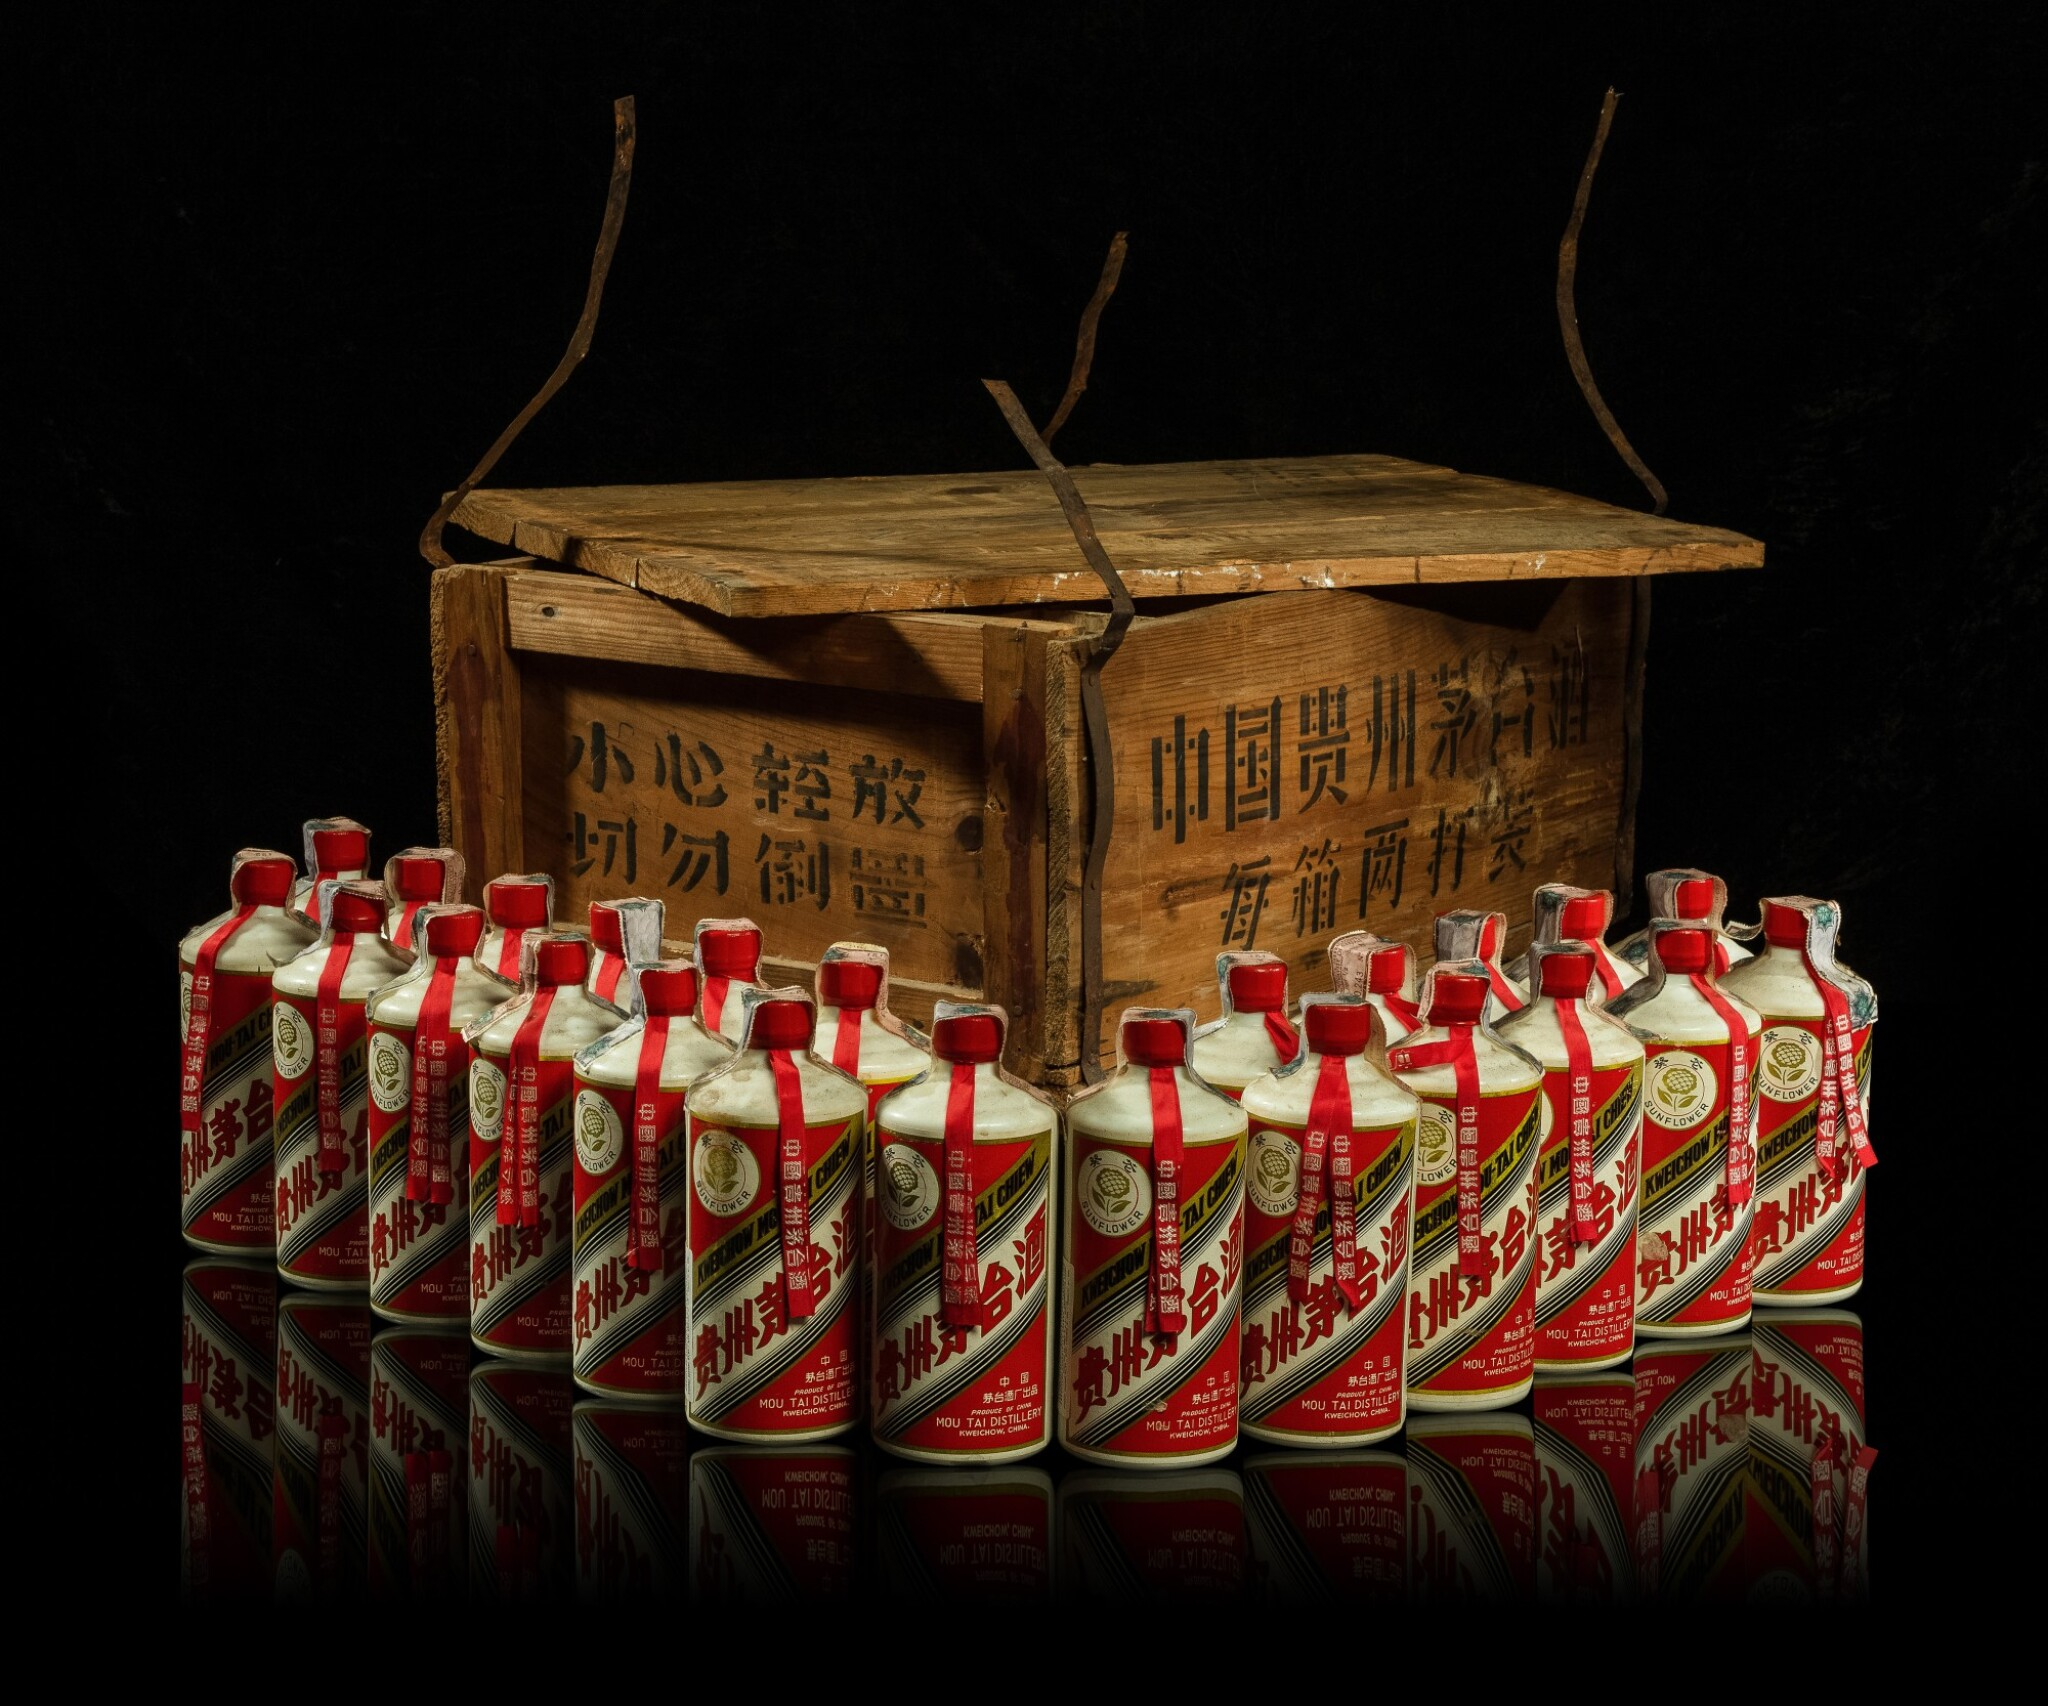 """View full screen - View 1 of Lot 1. """"Sun Flower"""" Kweichow Moutai in Original Wooden Crate 53.0 abv 1974 年葵花牌貴州茅台酒原木箱 (24 BT50)."""